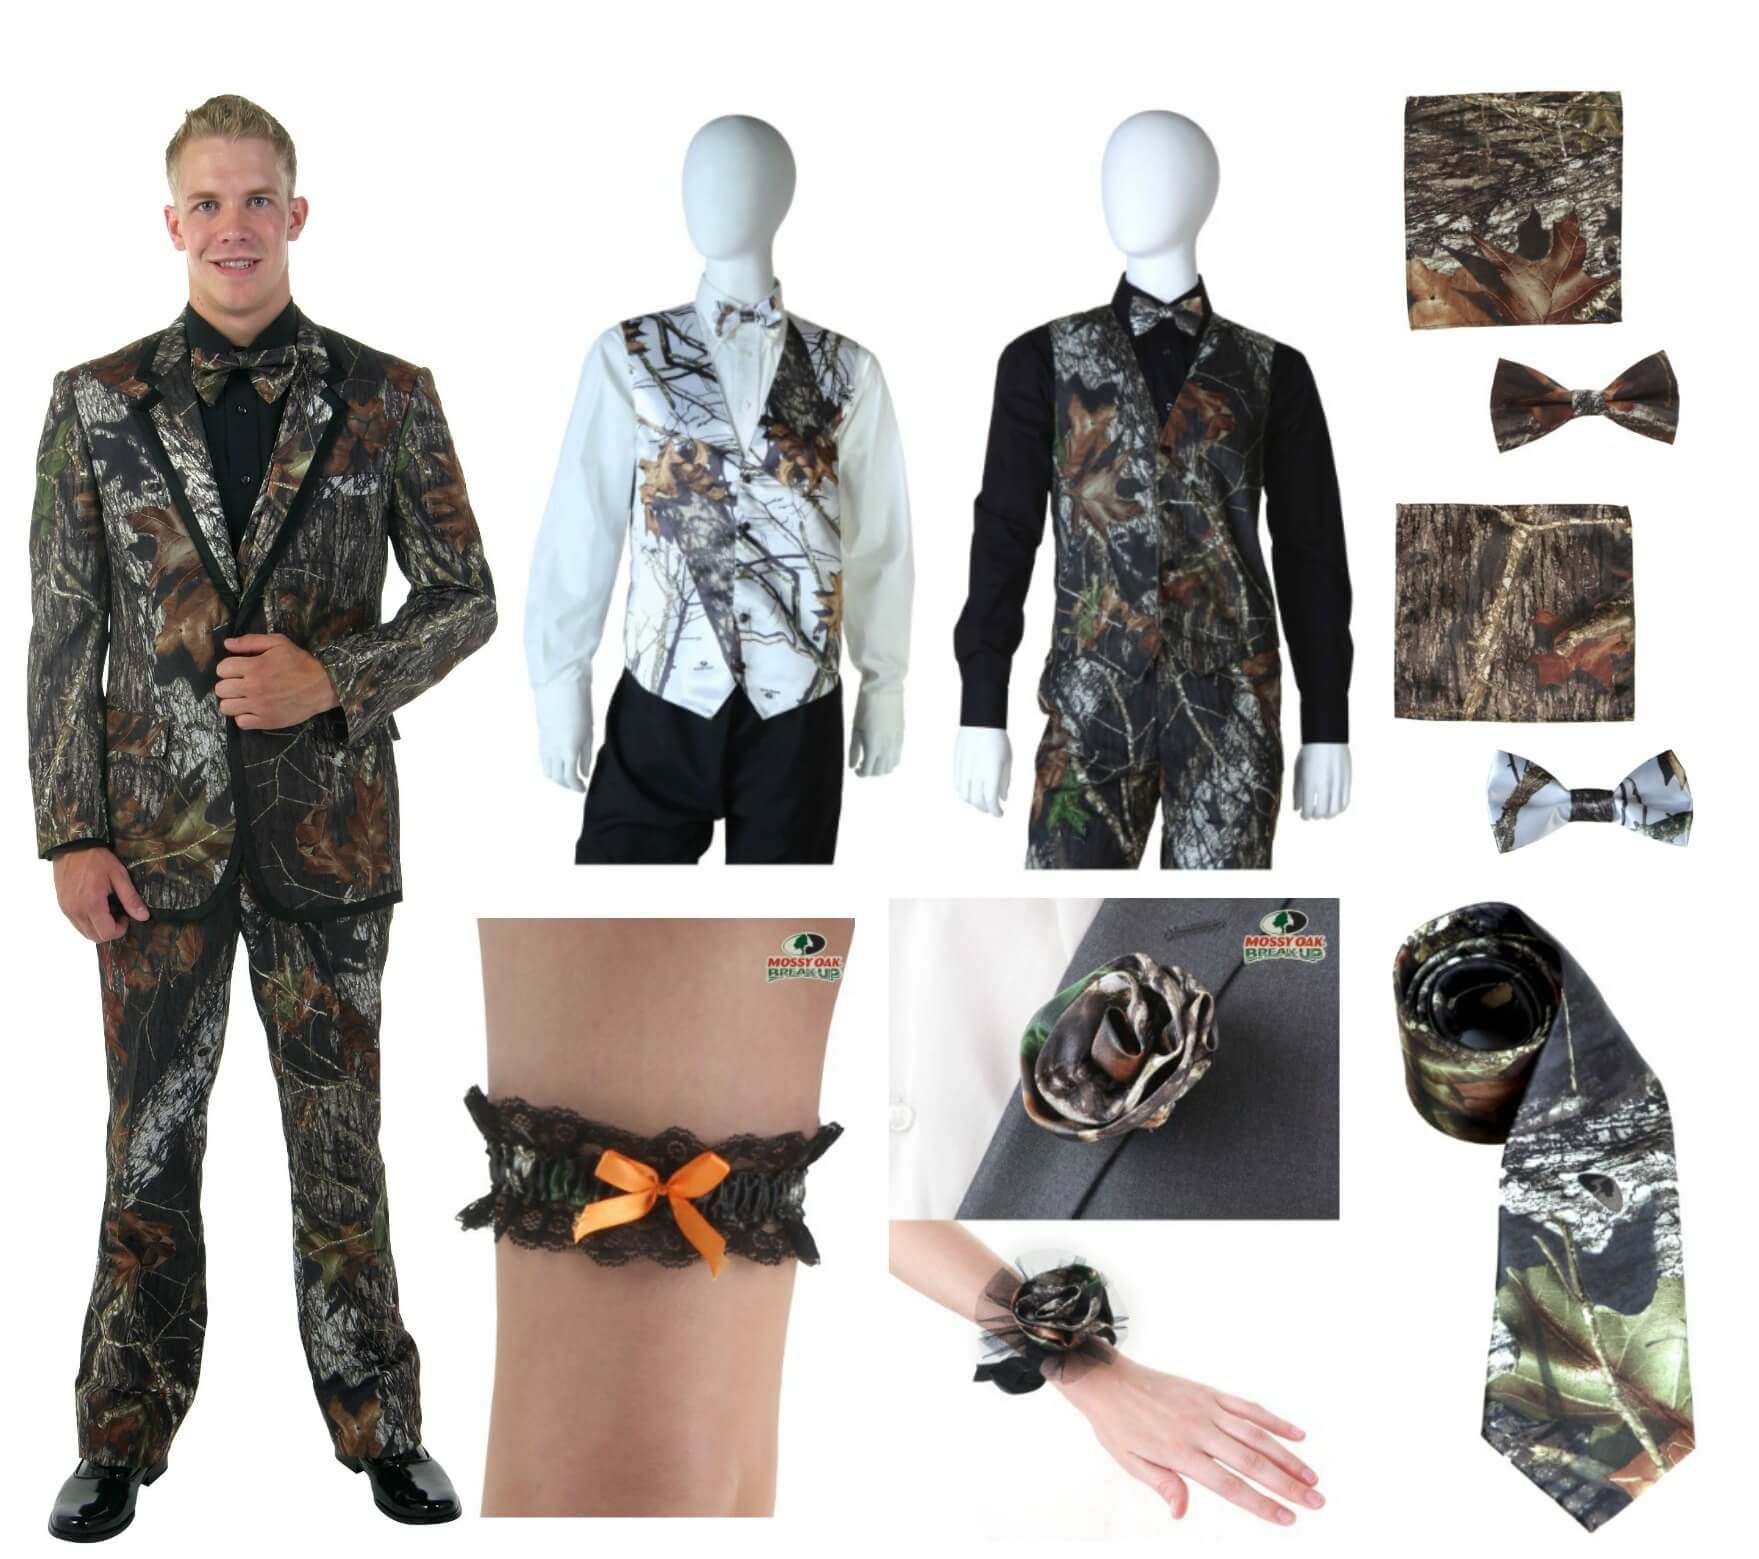 Prom Suits and Tuxedos for Everyone! HalloweenCostumes